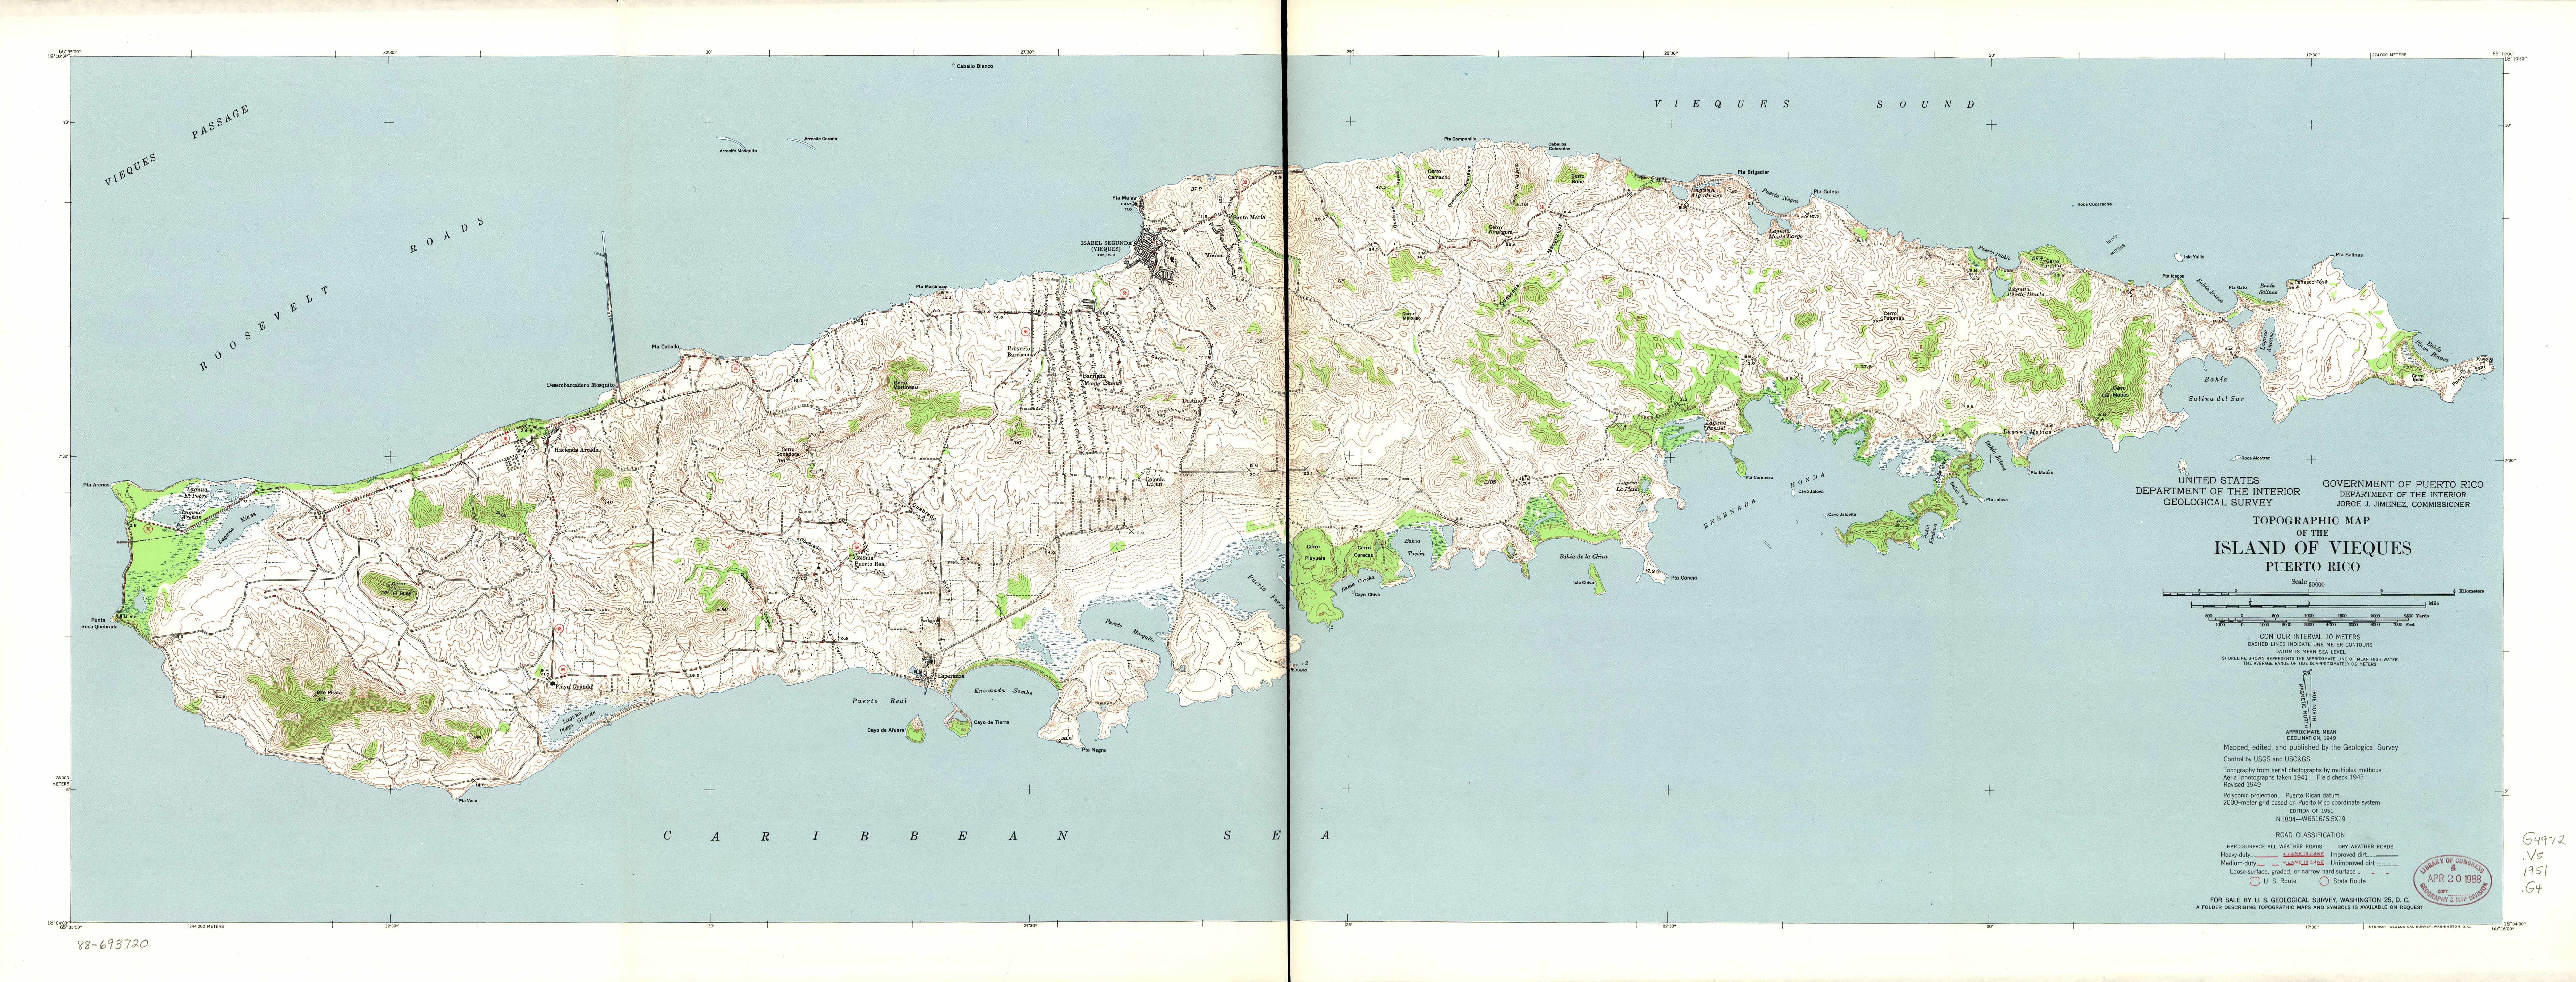 Large Scale Detailed Topographic Map Of The Island Of Vieques - North america topographic map